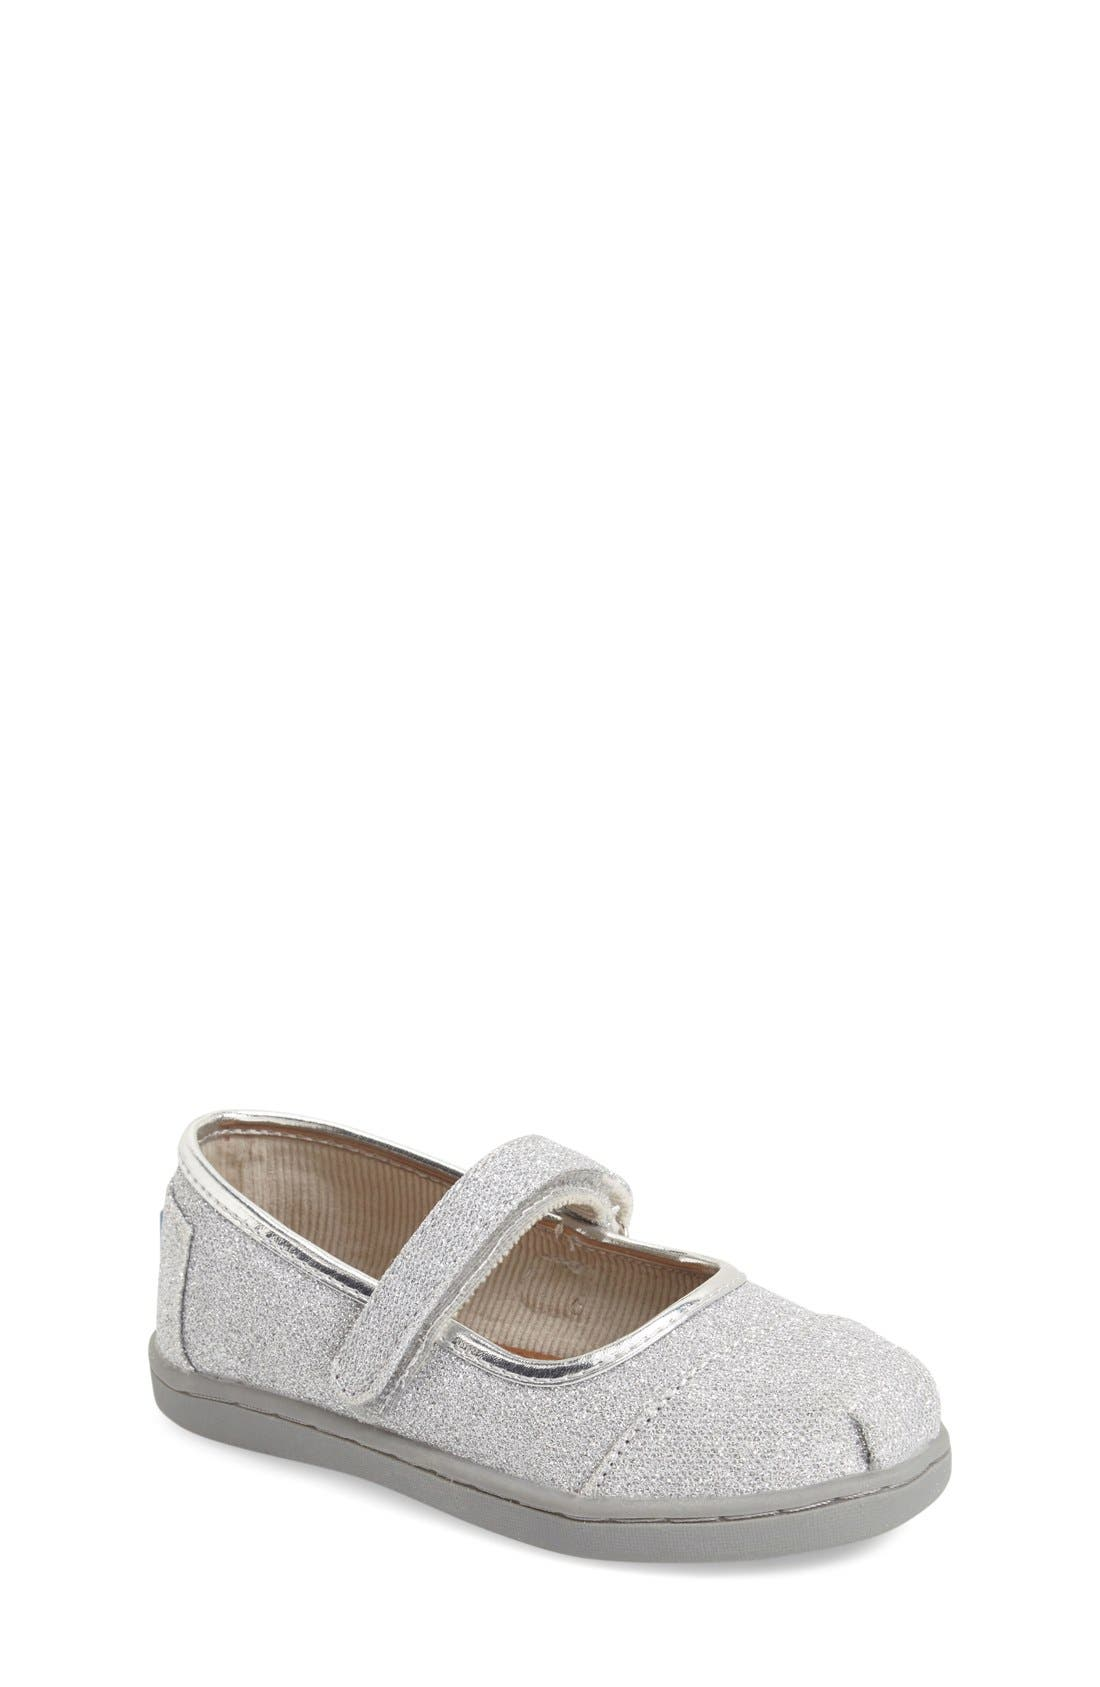 Alternate Image 1 Selected - TOMS 'Tiny Glimmer' Mary Jane Flat (Baby, Walker & Toddler)